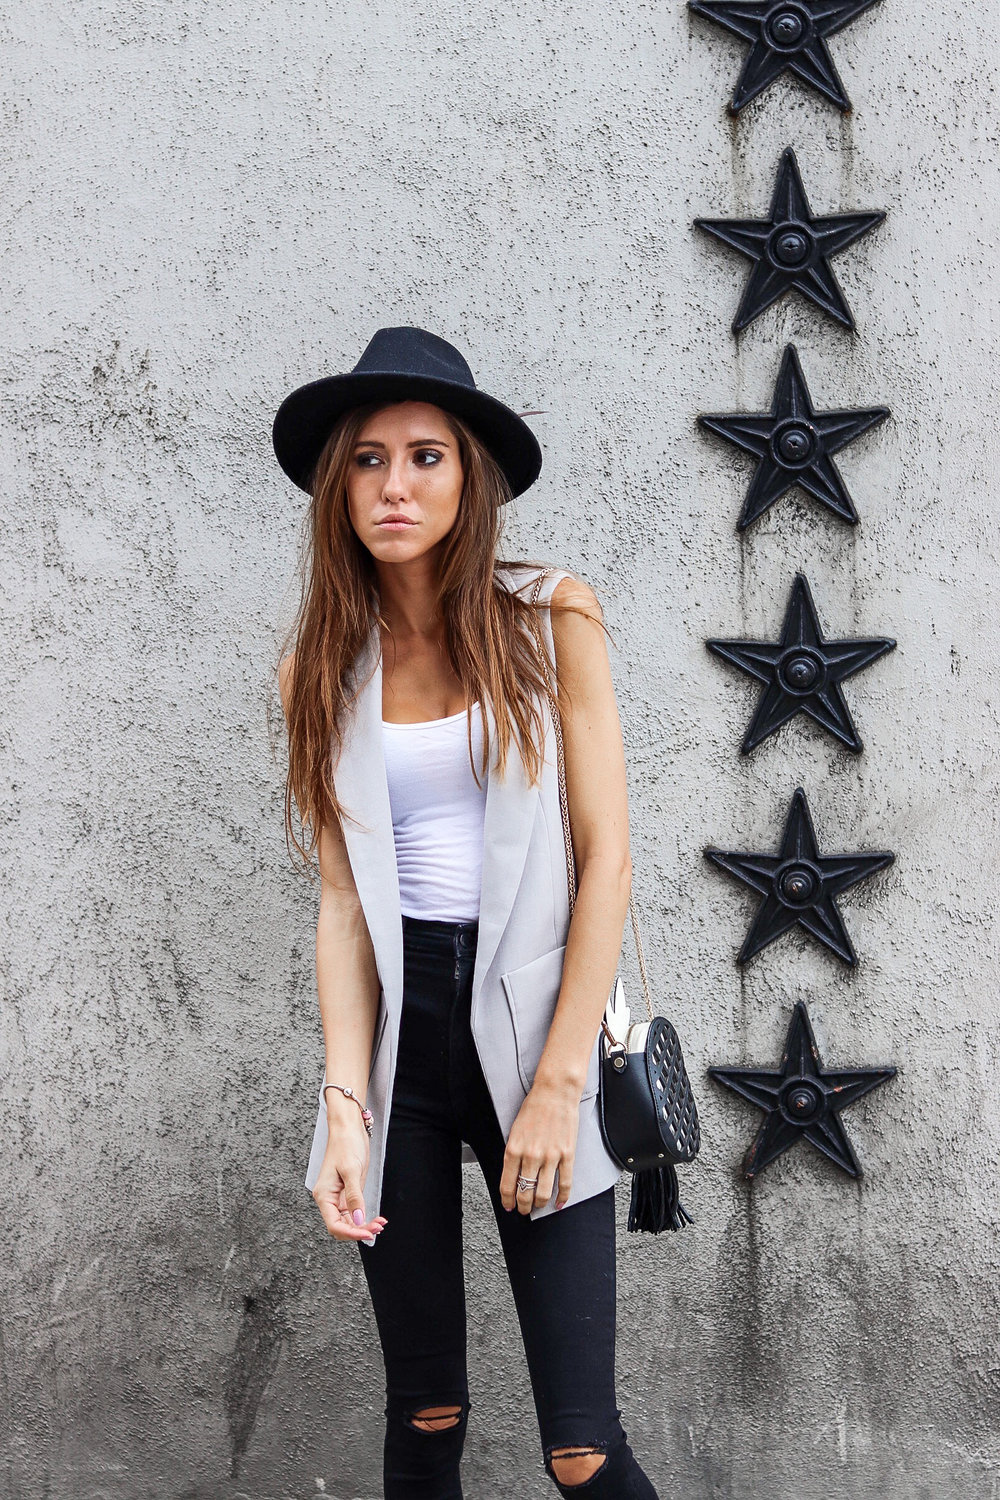 The Hungarian Brunette Outfit Inspo - OOTD sleeveless blazer outfit